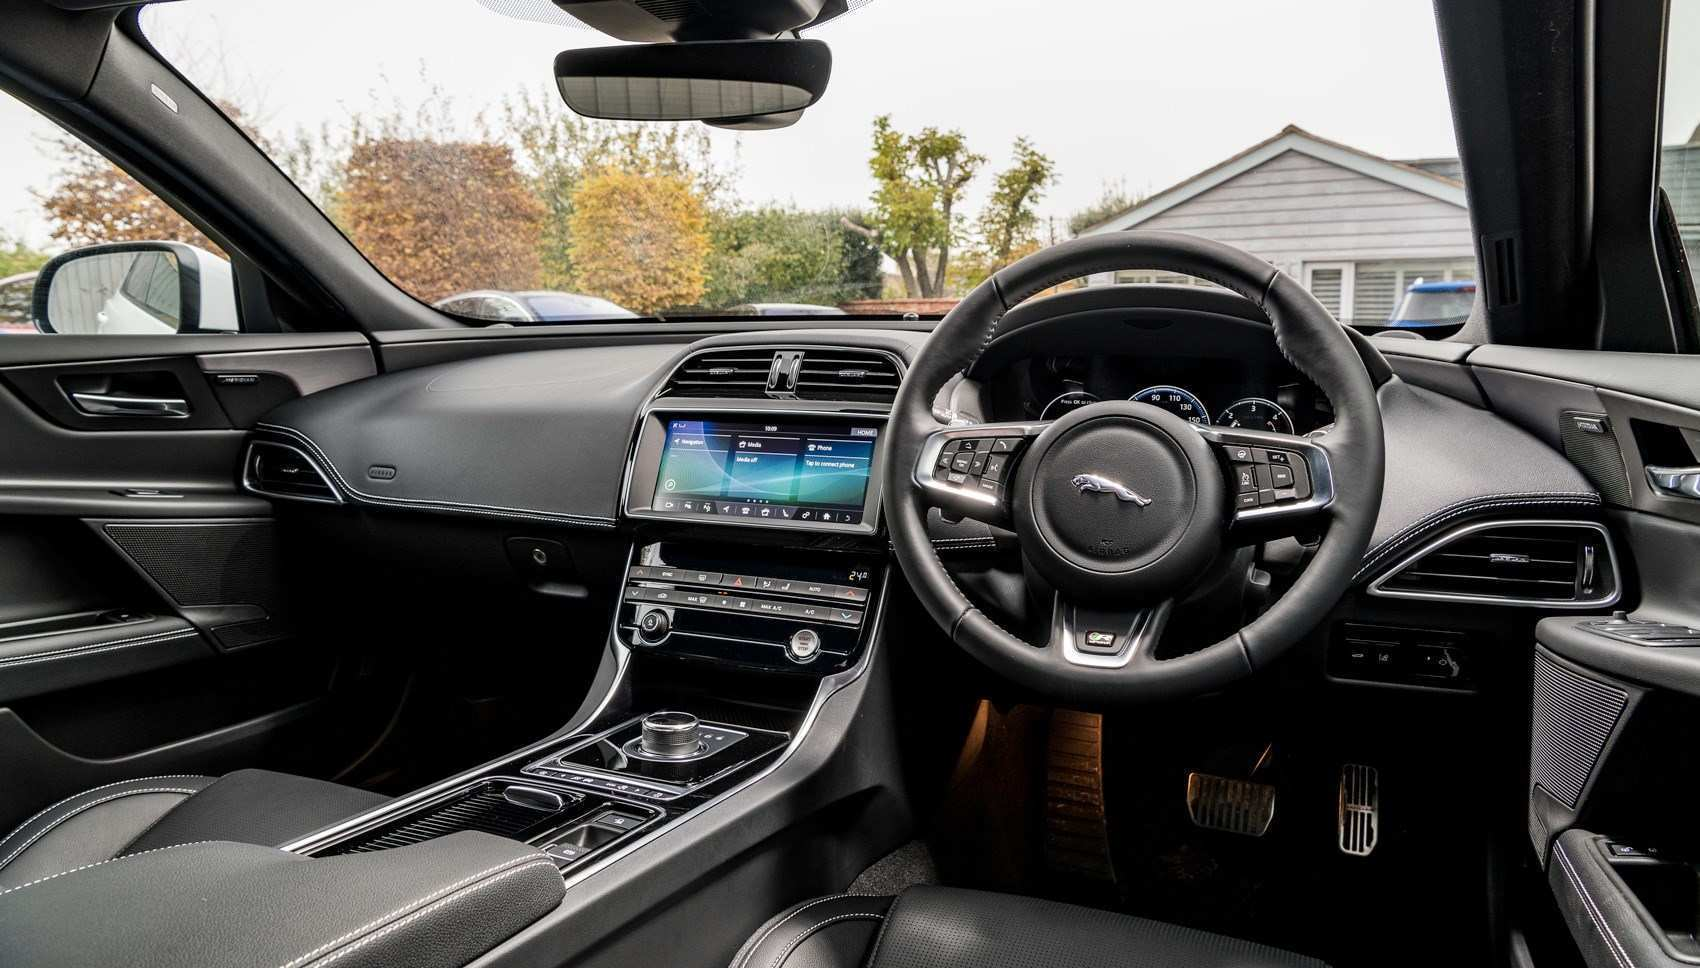 65 The Jaguar Xe 2020 Interior Release Date for Jaguar Xe 2020 Interior